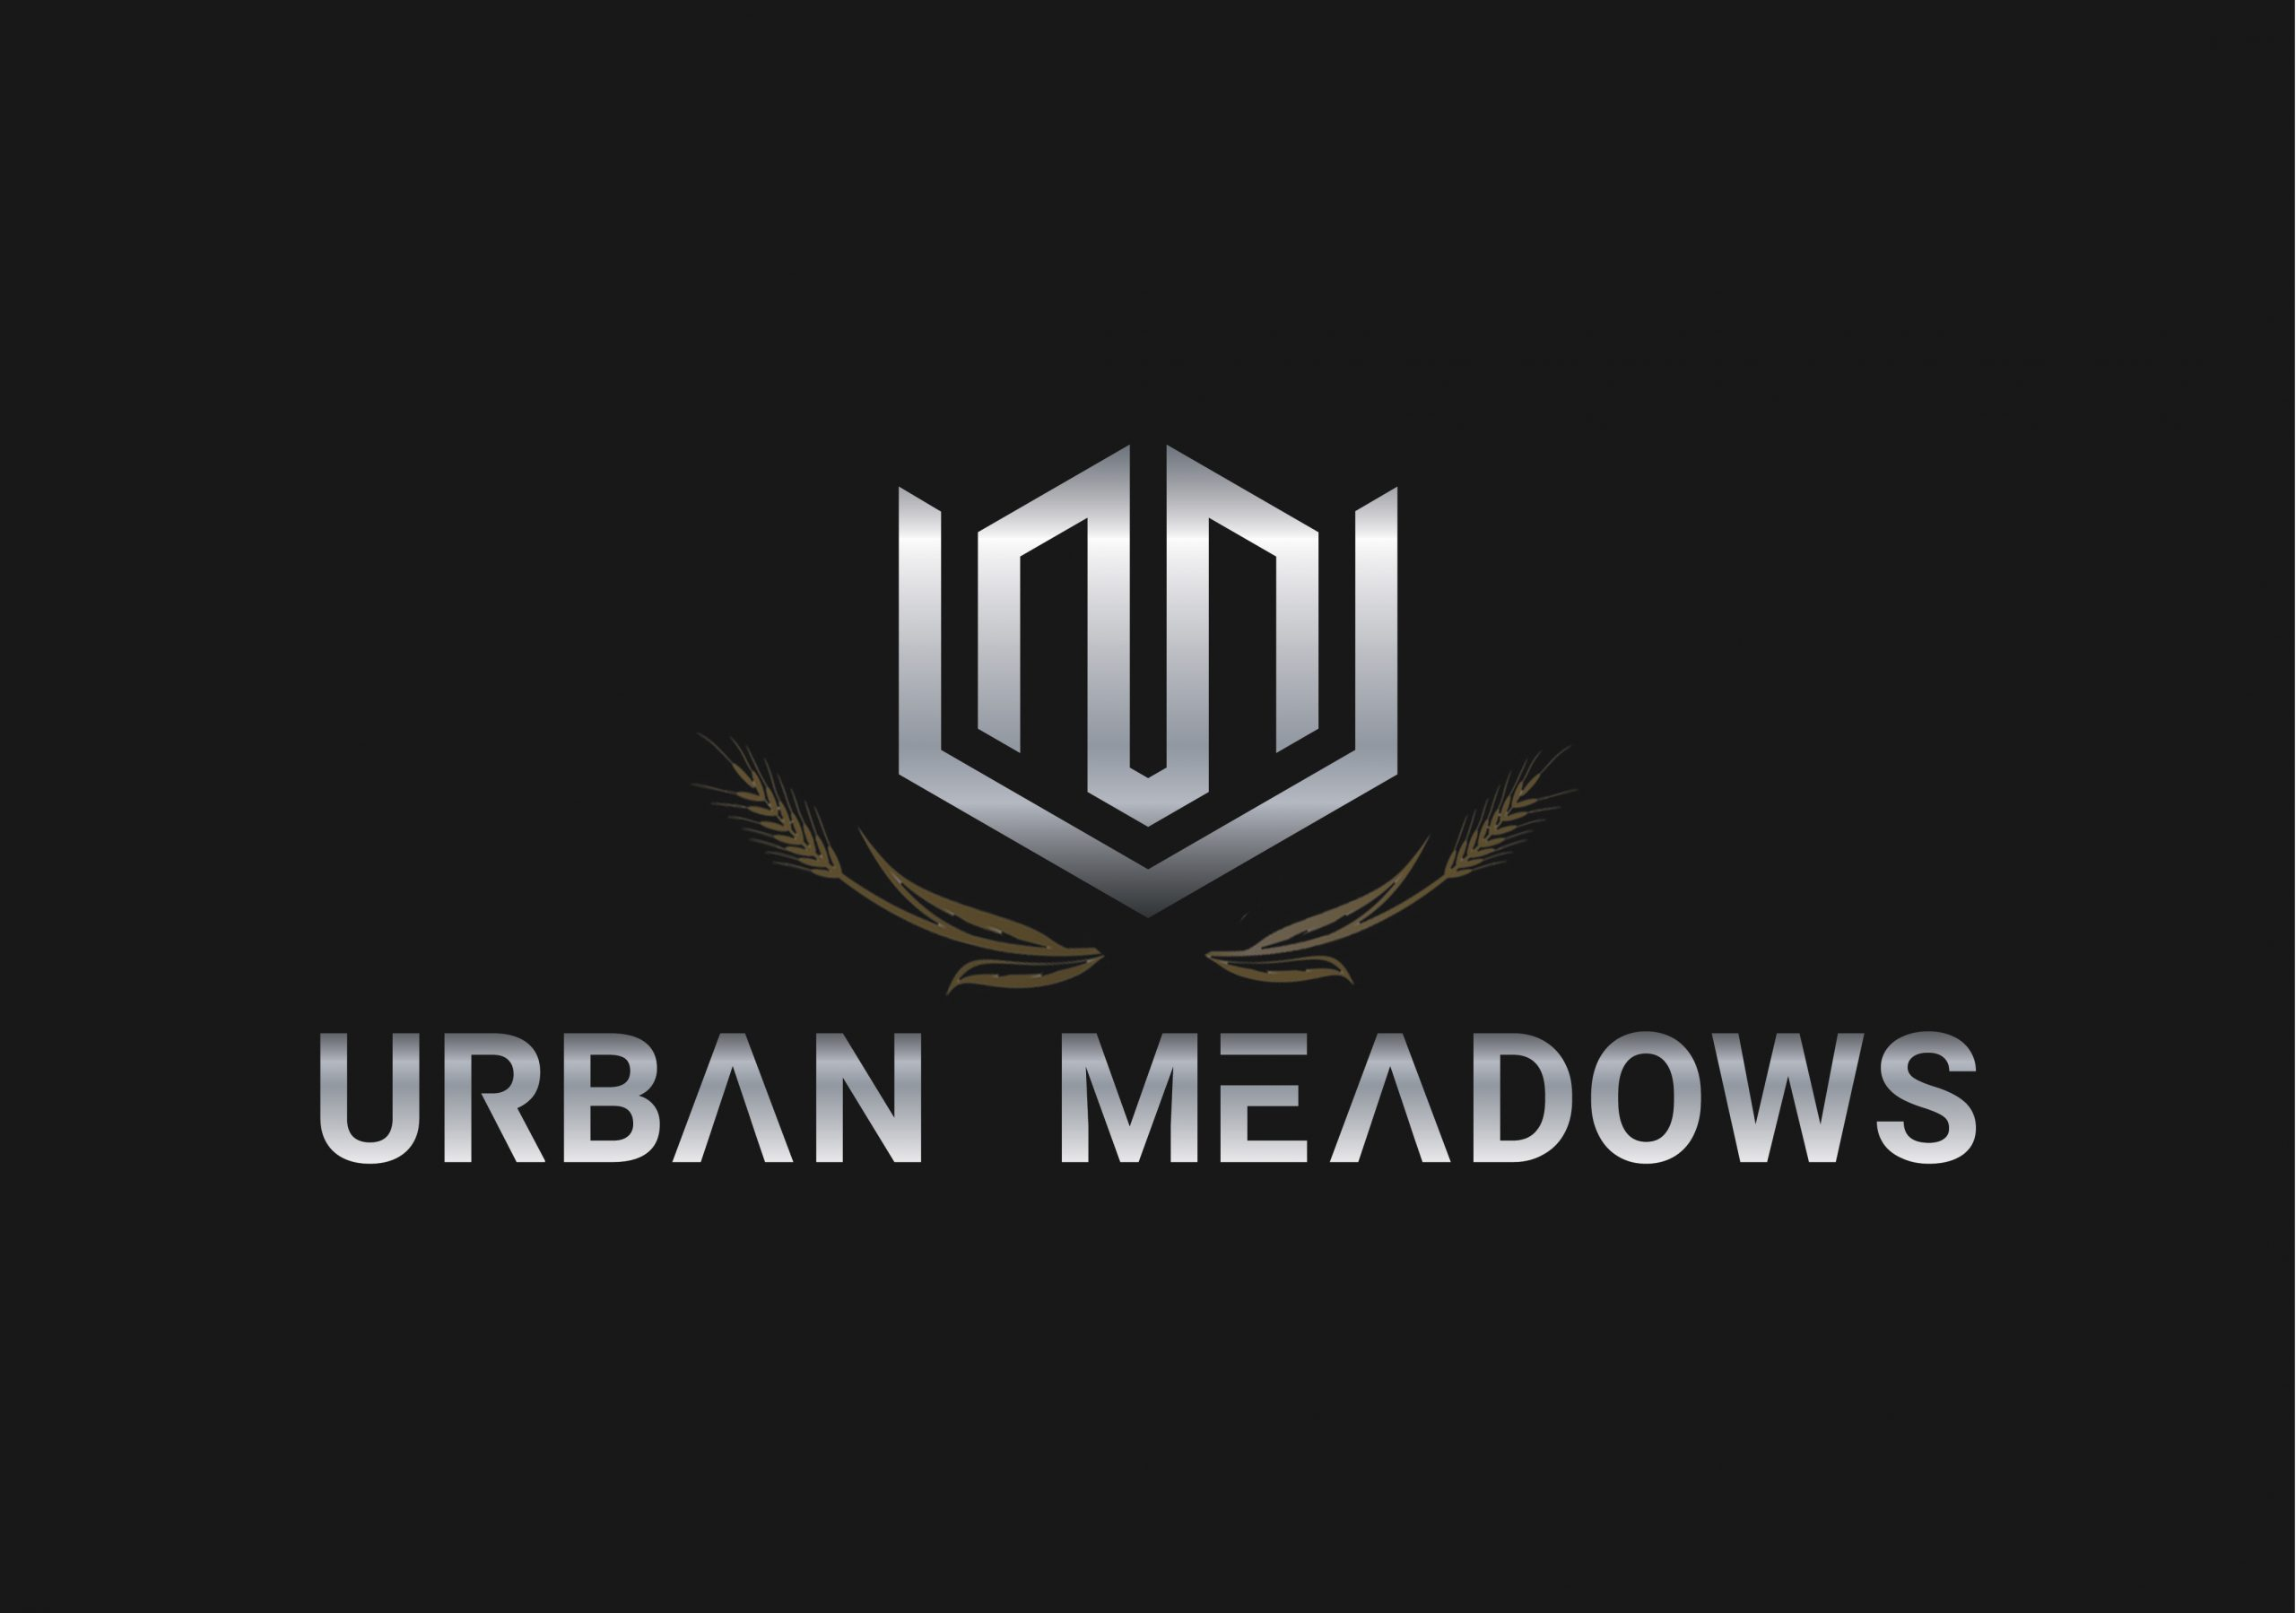 Urban Meadows